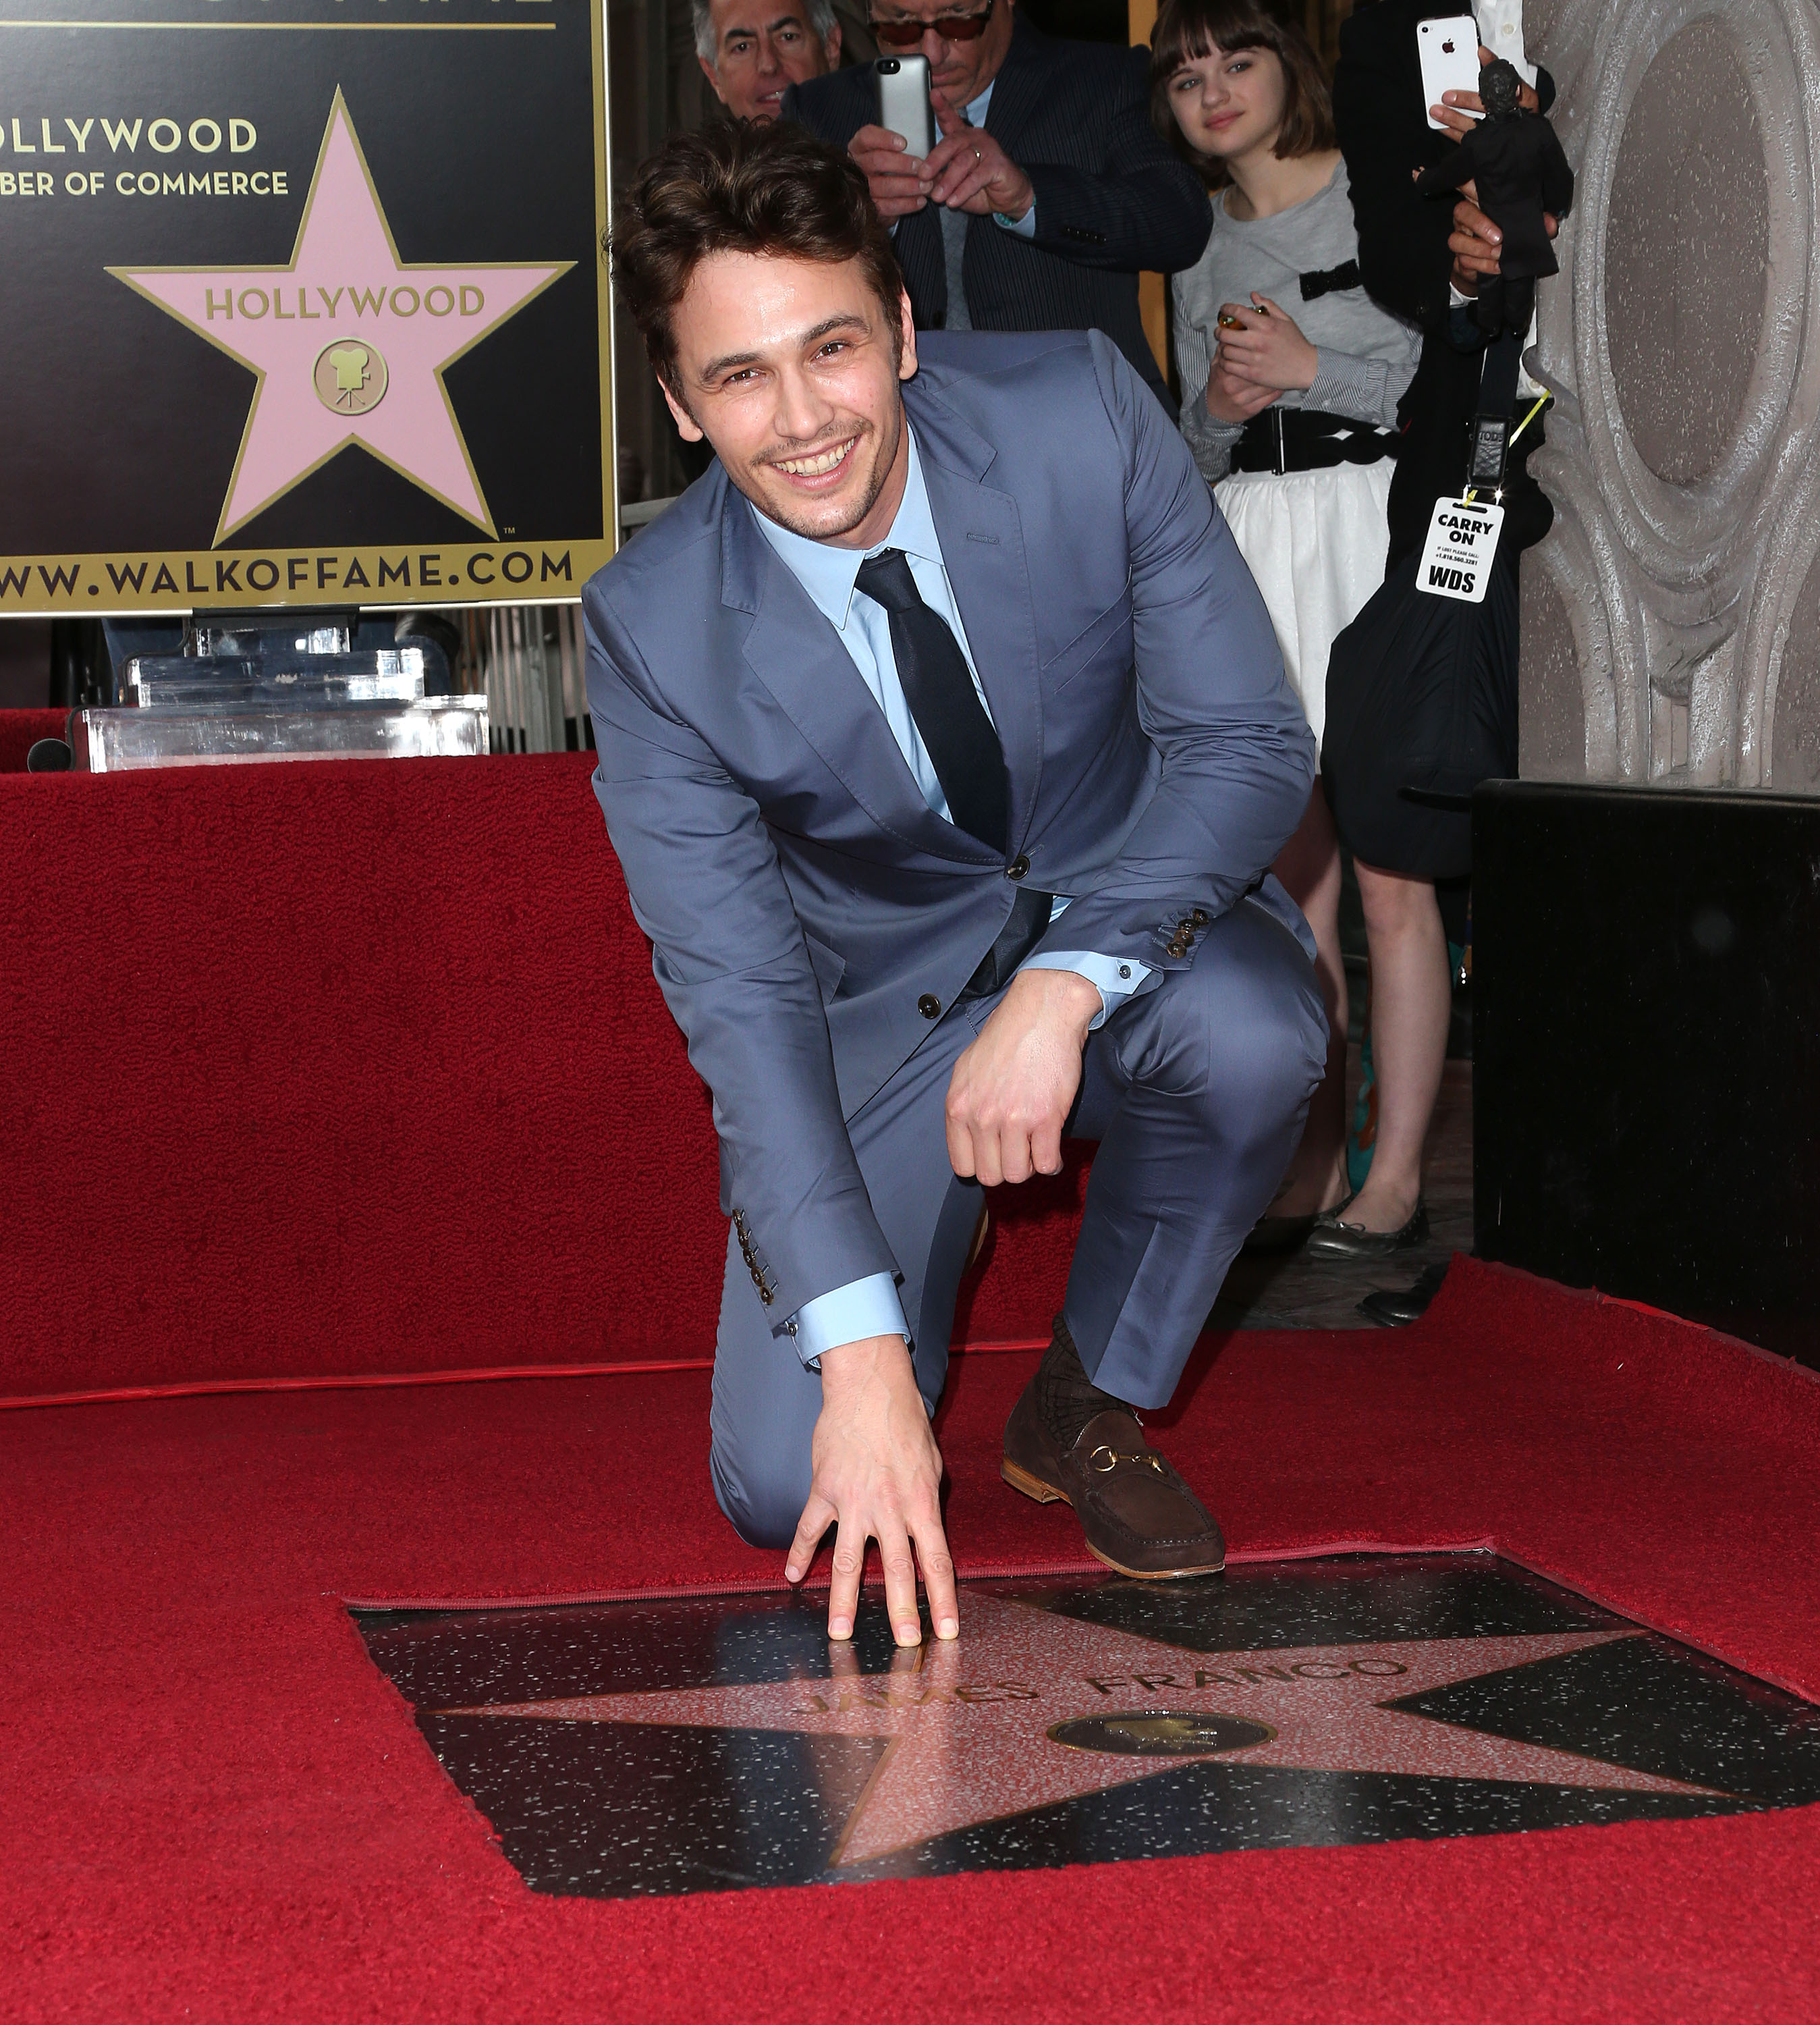 James Franco posed by his Walk of Fame star.